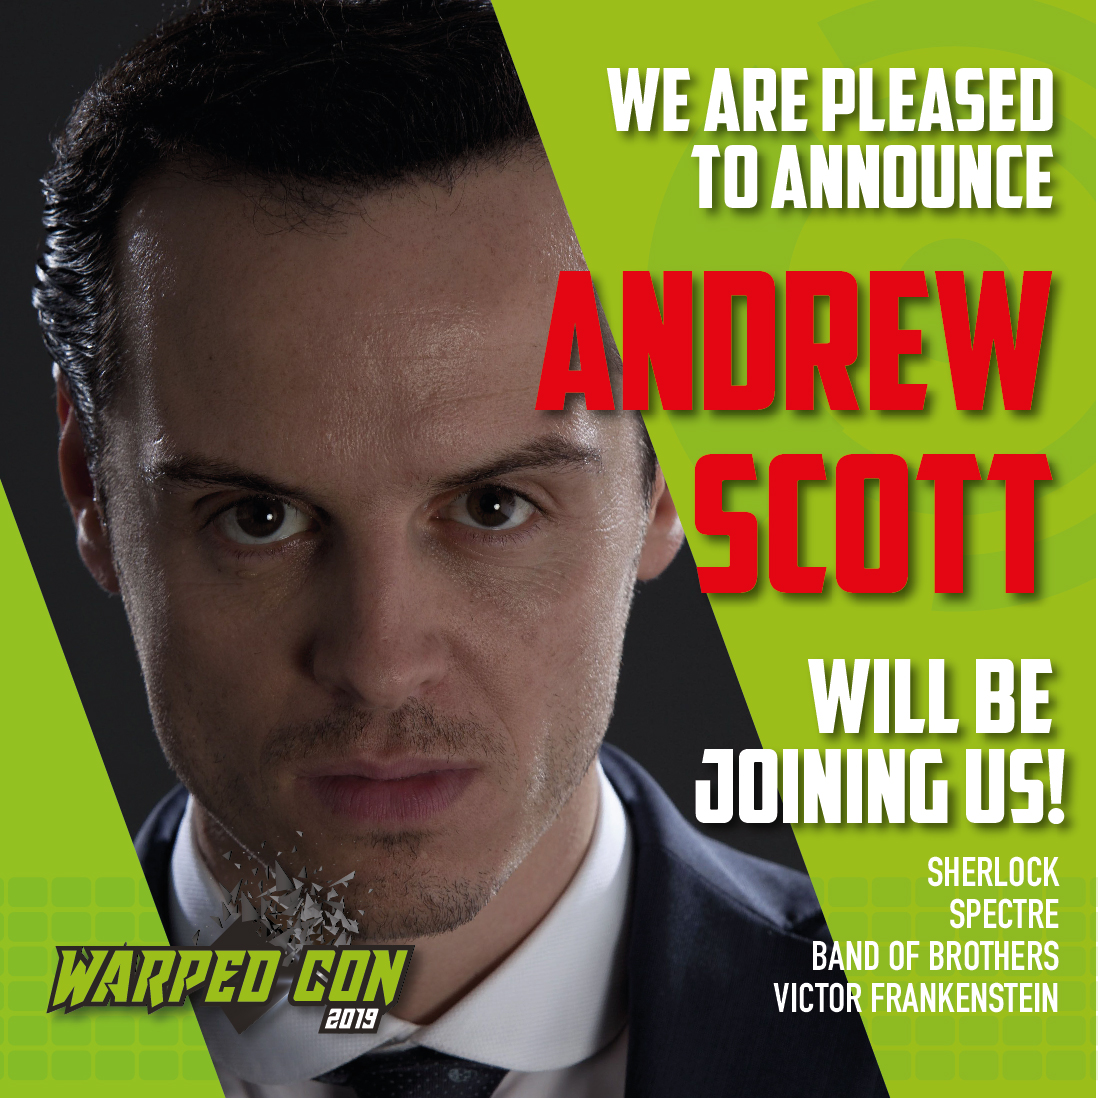 Andrew Scott guest image in green squared